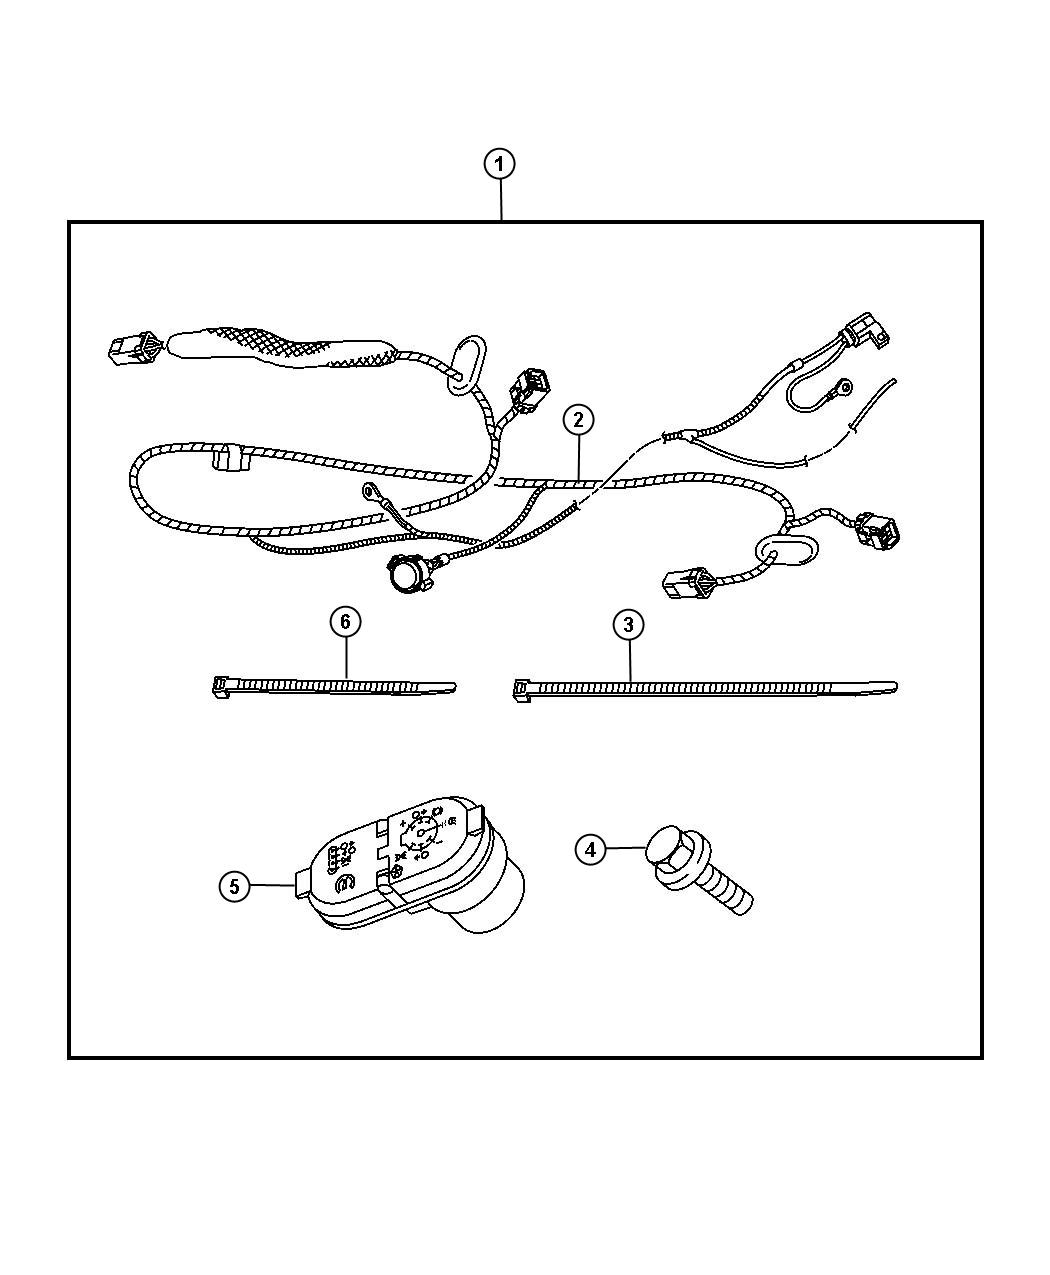 Dodge Ram 5500 Trailer Tow Wiring Harness Kit, with 7-way